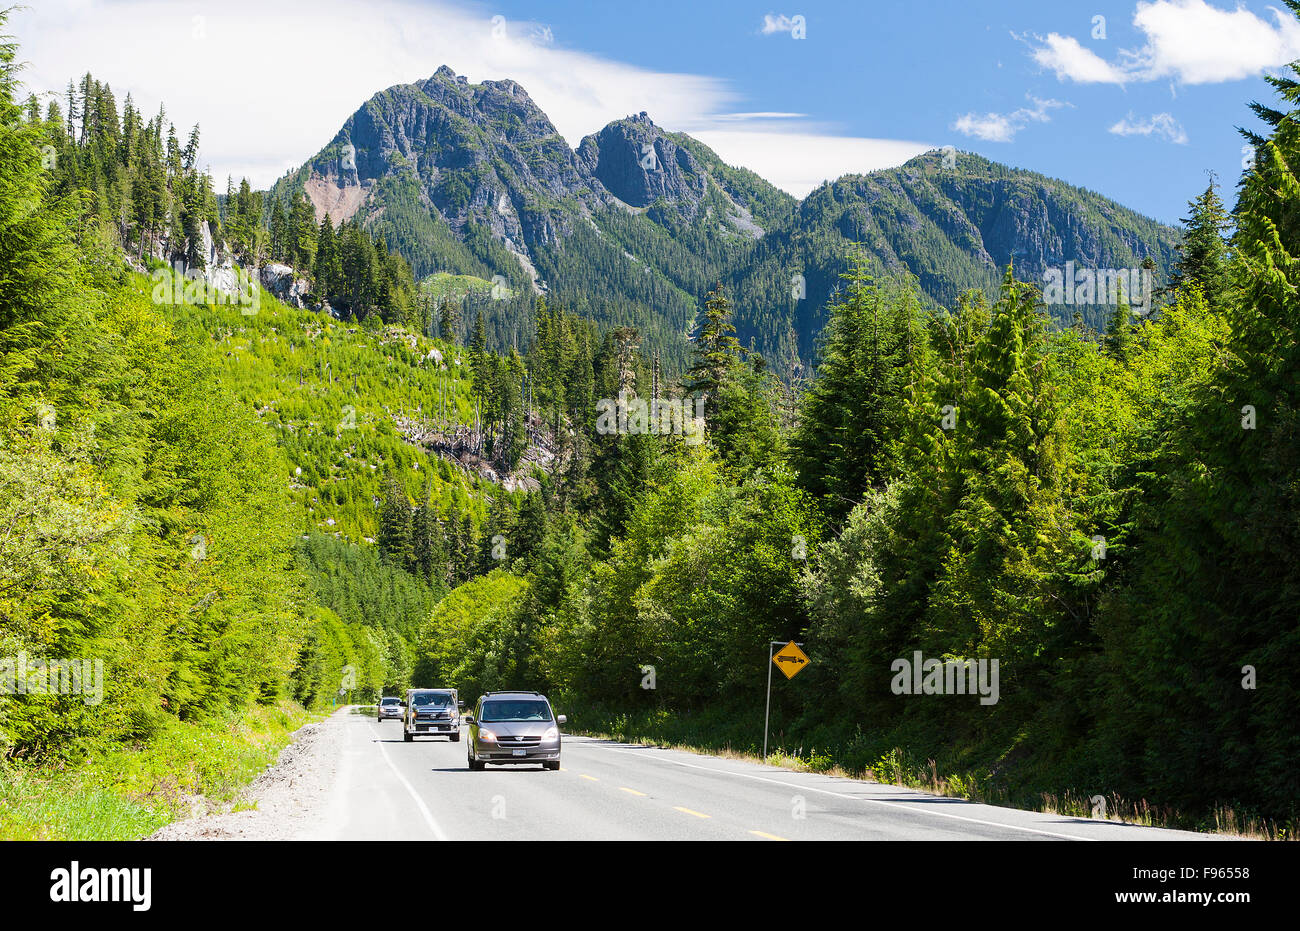 Highway scenic in the Nimpkish Valley along Highway 19, north of Hoomak Lake and south of Woss. - Stock Image